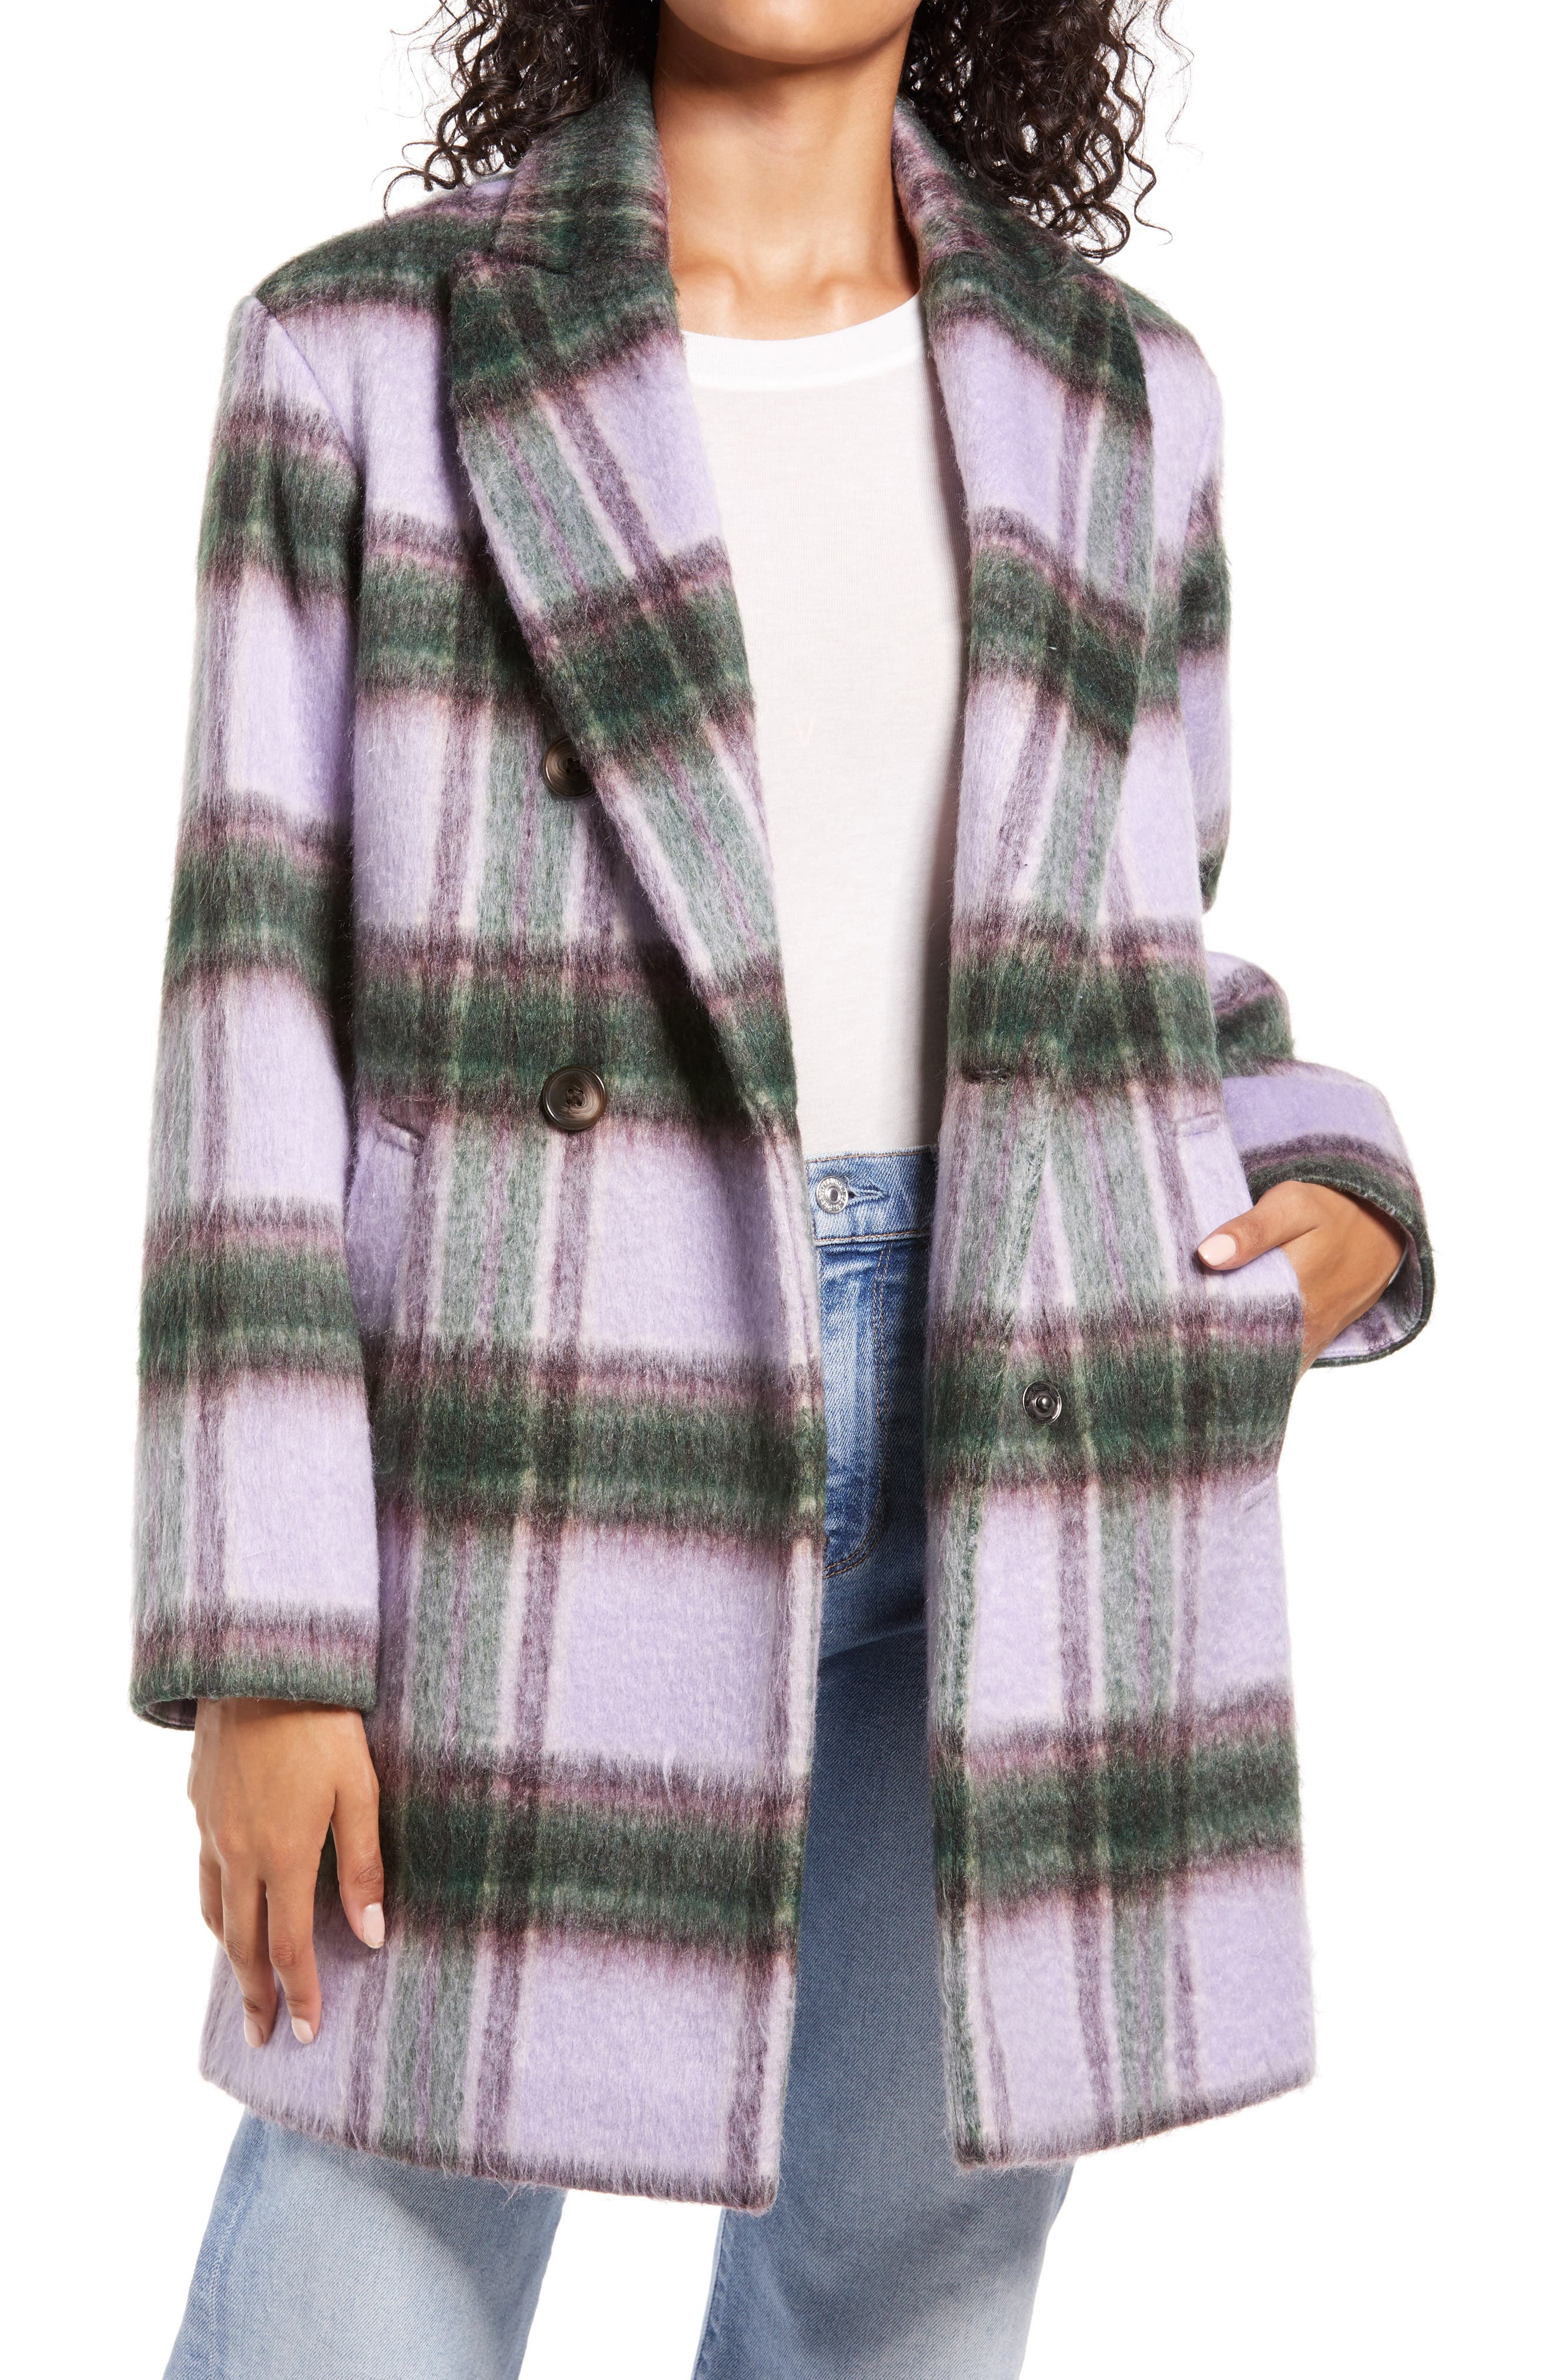 Brushed plaid lends rich visual texture to a chic cool-weather coat in a warm wool-rich blend. Style Name: Halogen Plaid Brushed Coat. Style Number: 6031400. Available in stores.